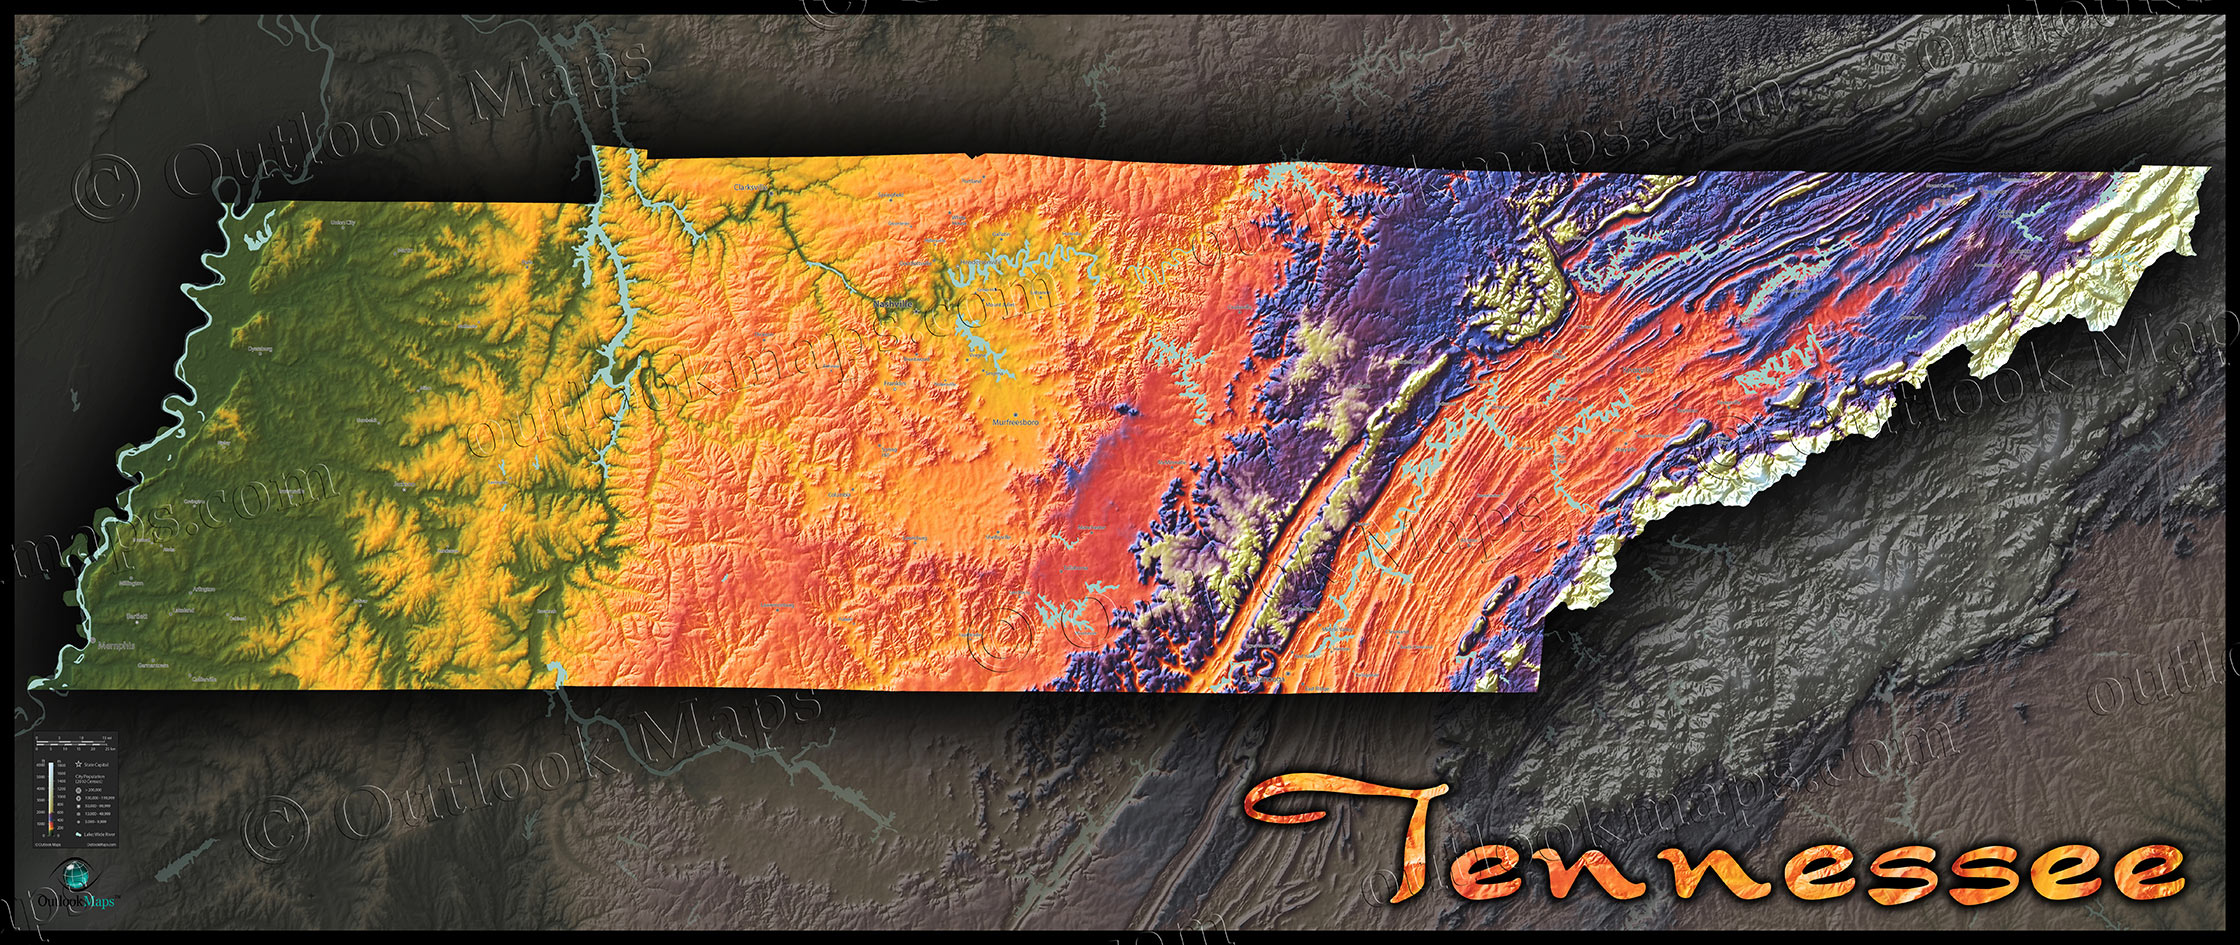 tennessee valley topographic map Tennessee Physical Map Topographic With Elevation Colors